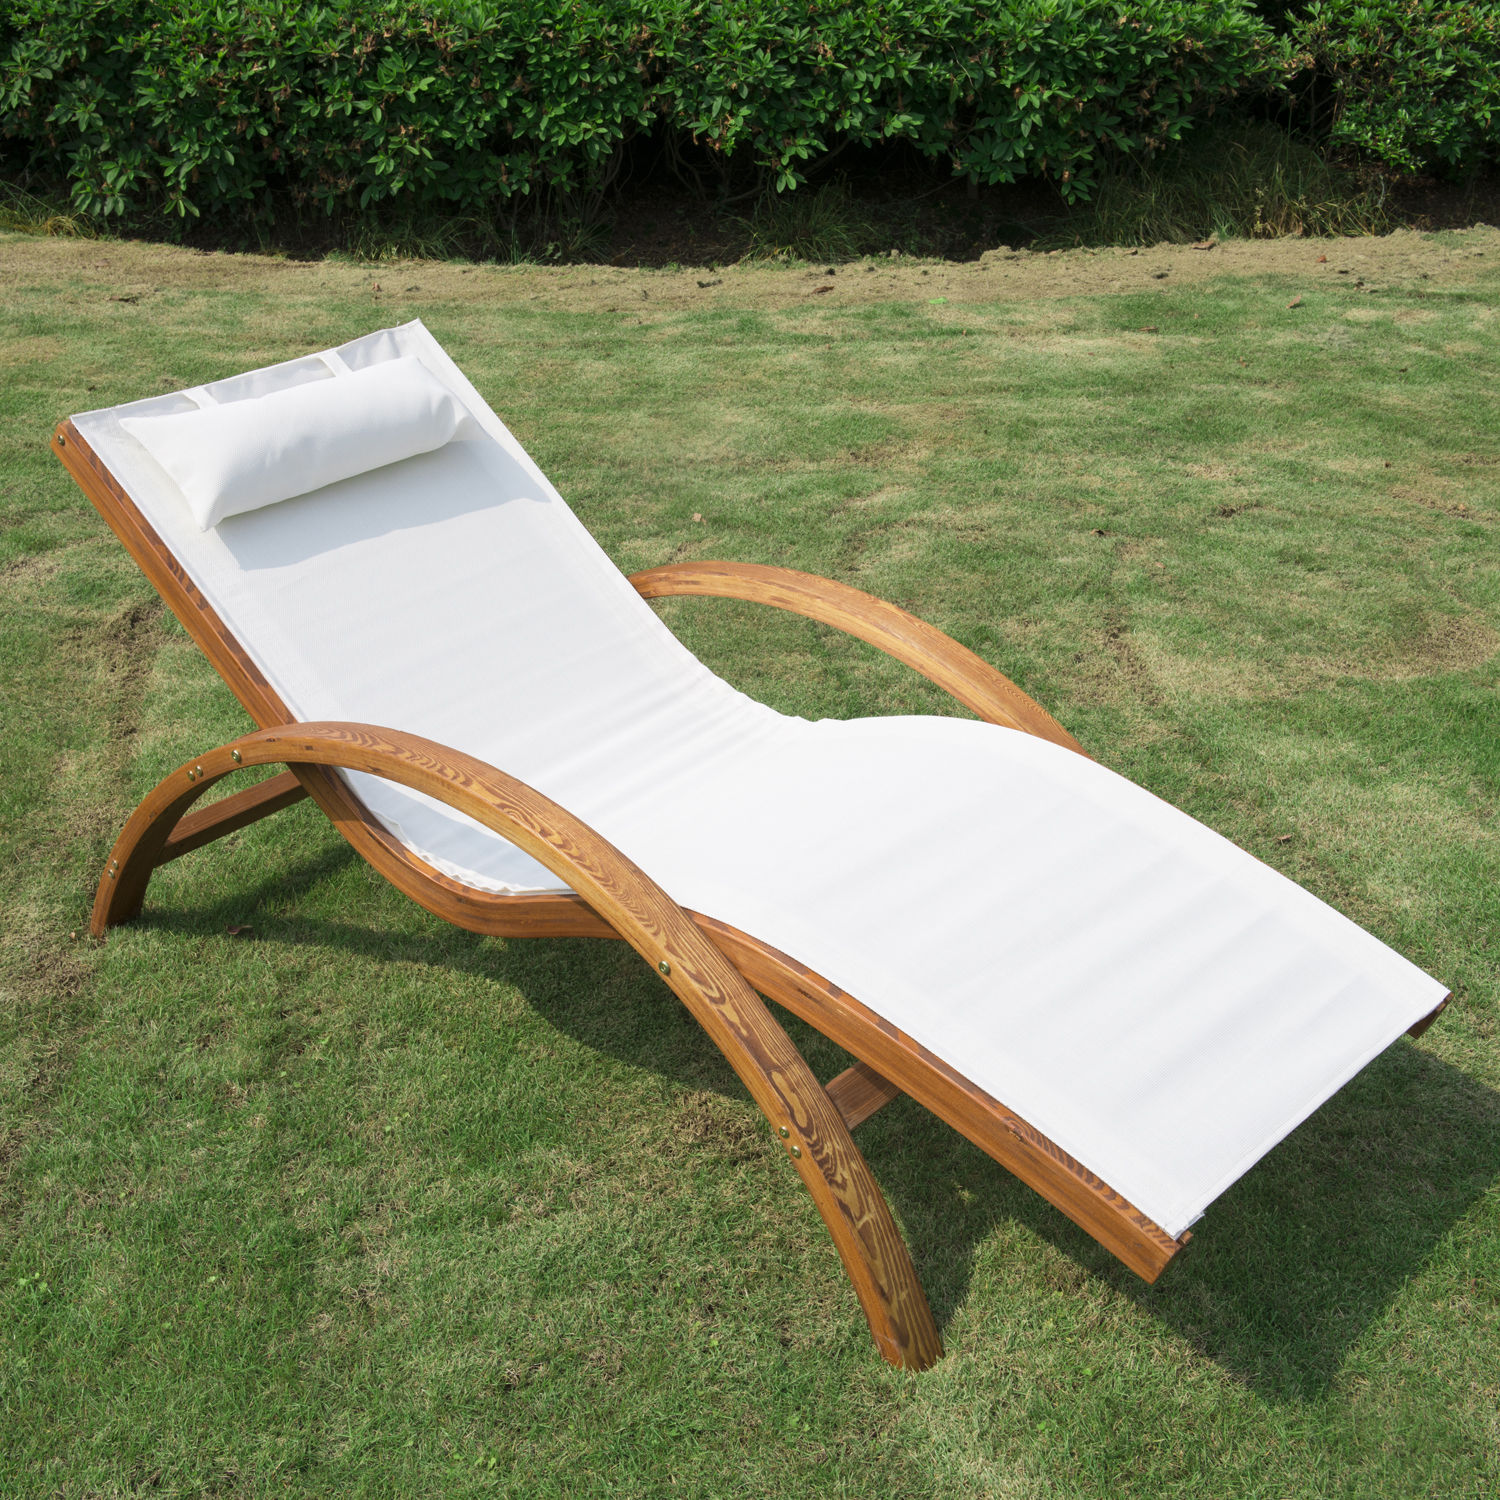 garden patio cordova daybeds agio chaise sheds costco furniture outdoor uk loungers lounge p woven